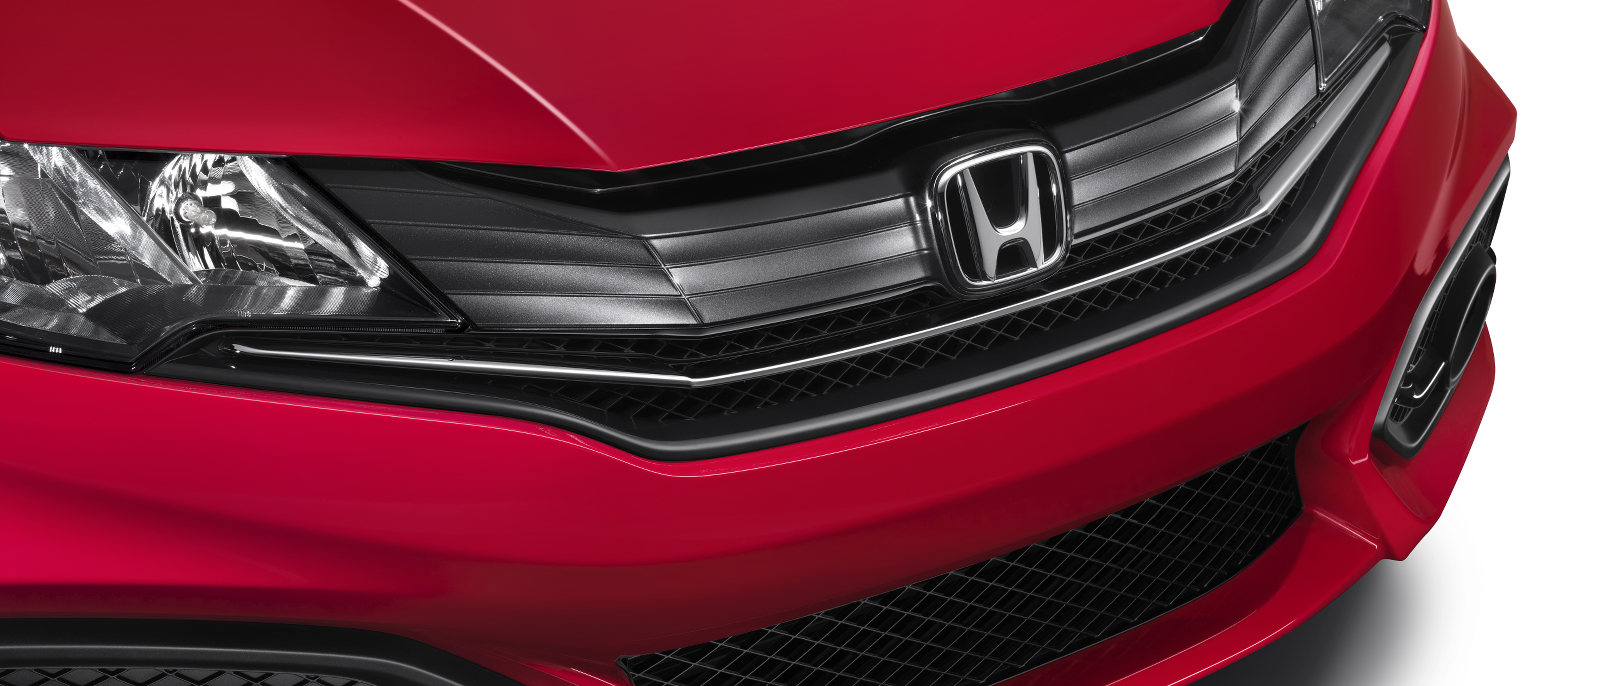 2014 Honda Civic Coupe Close Up